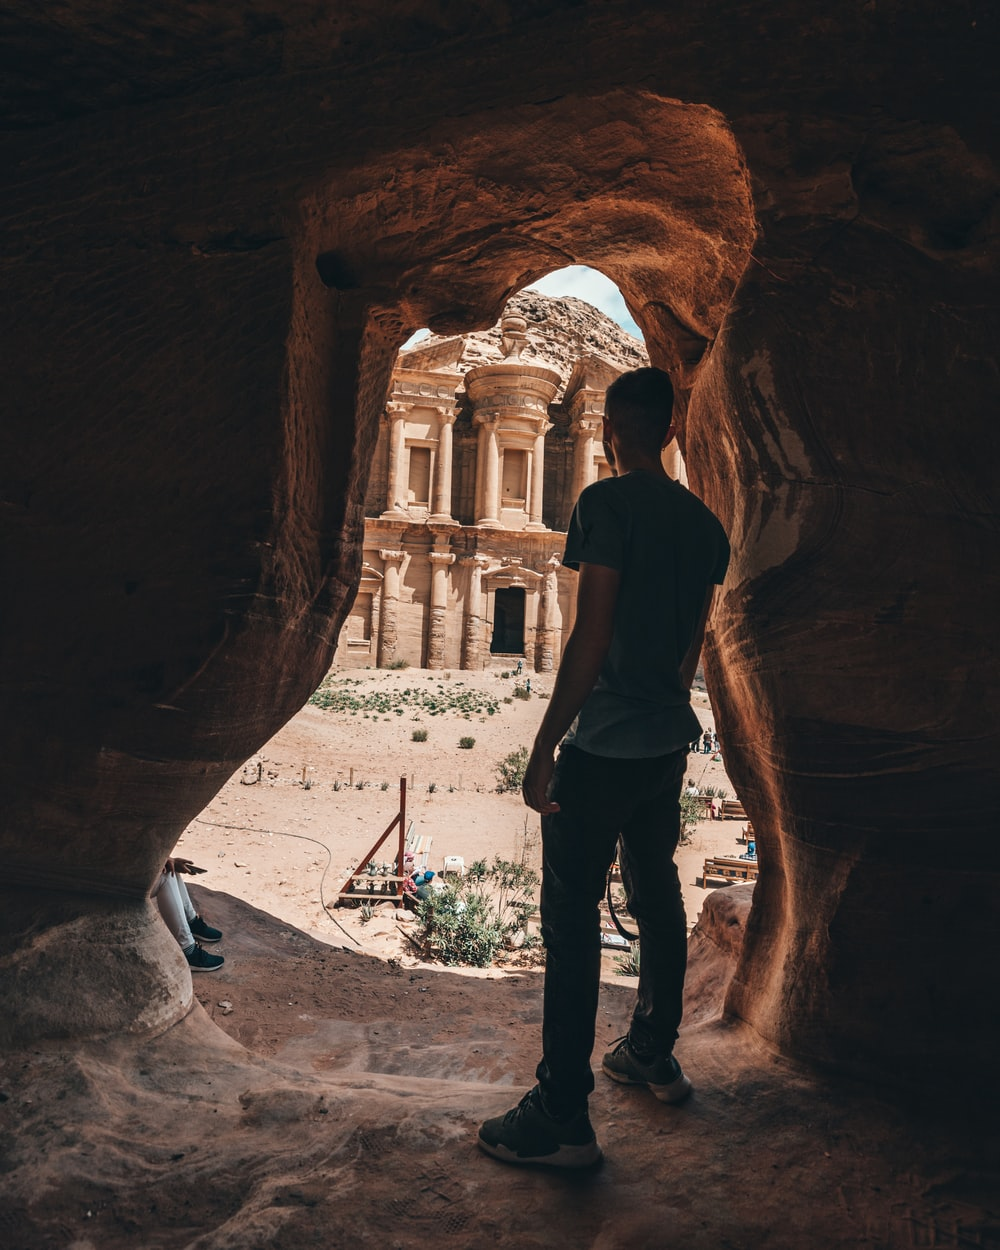 man standing inside cave